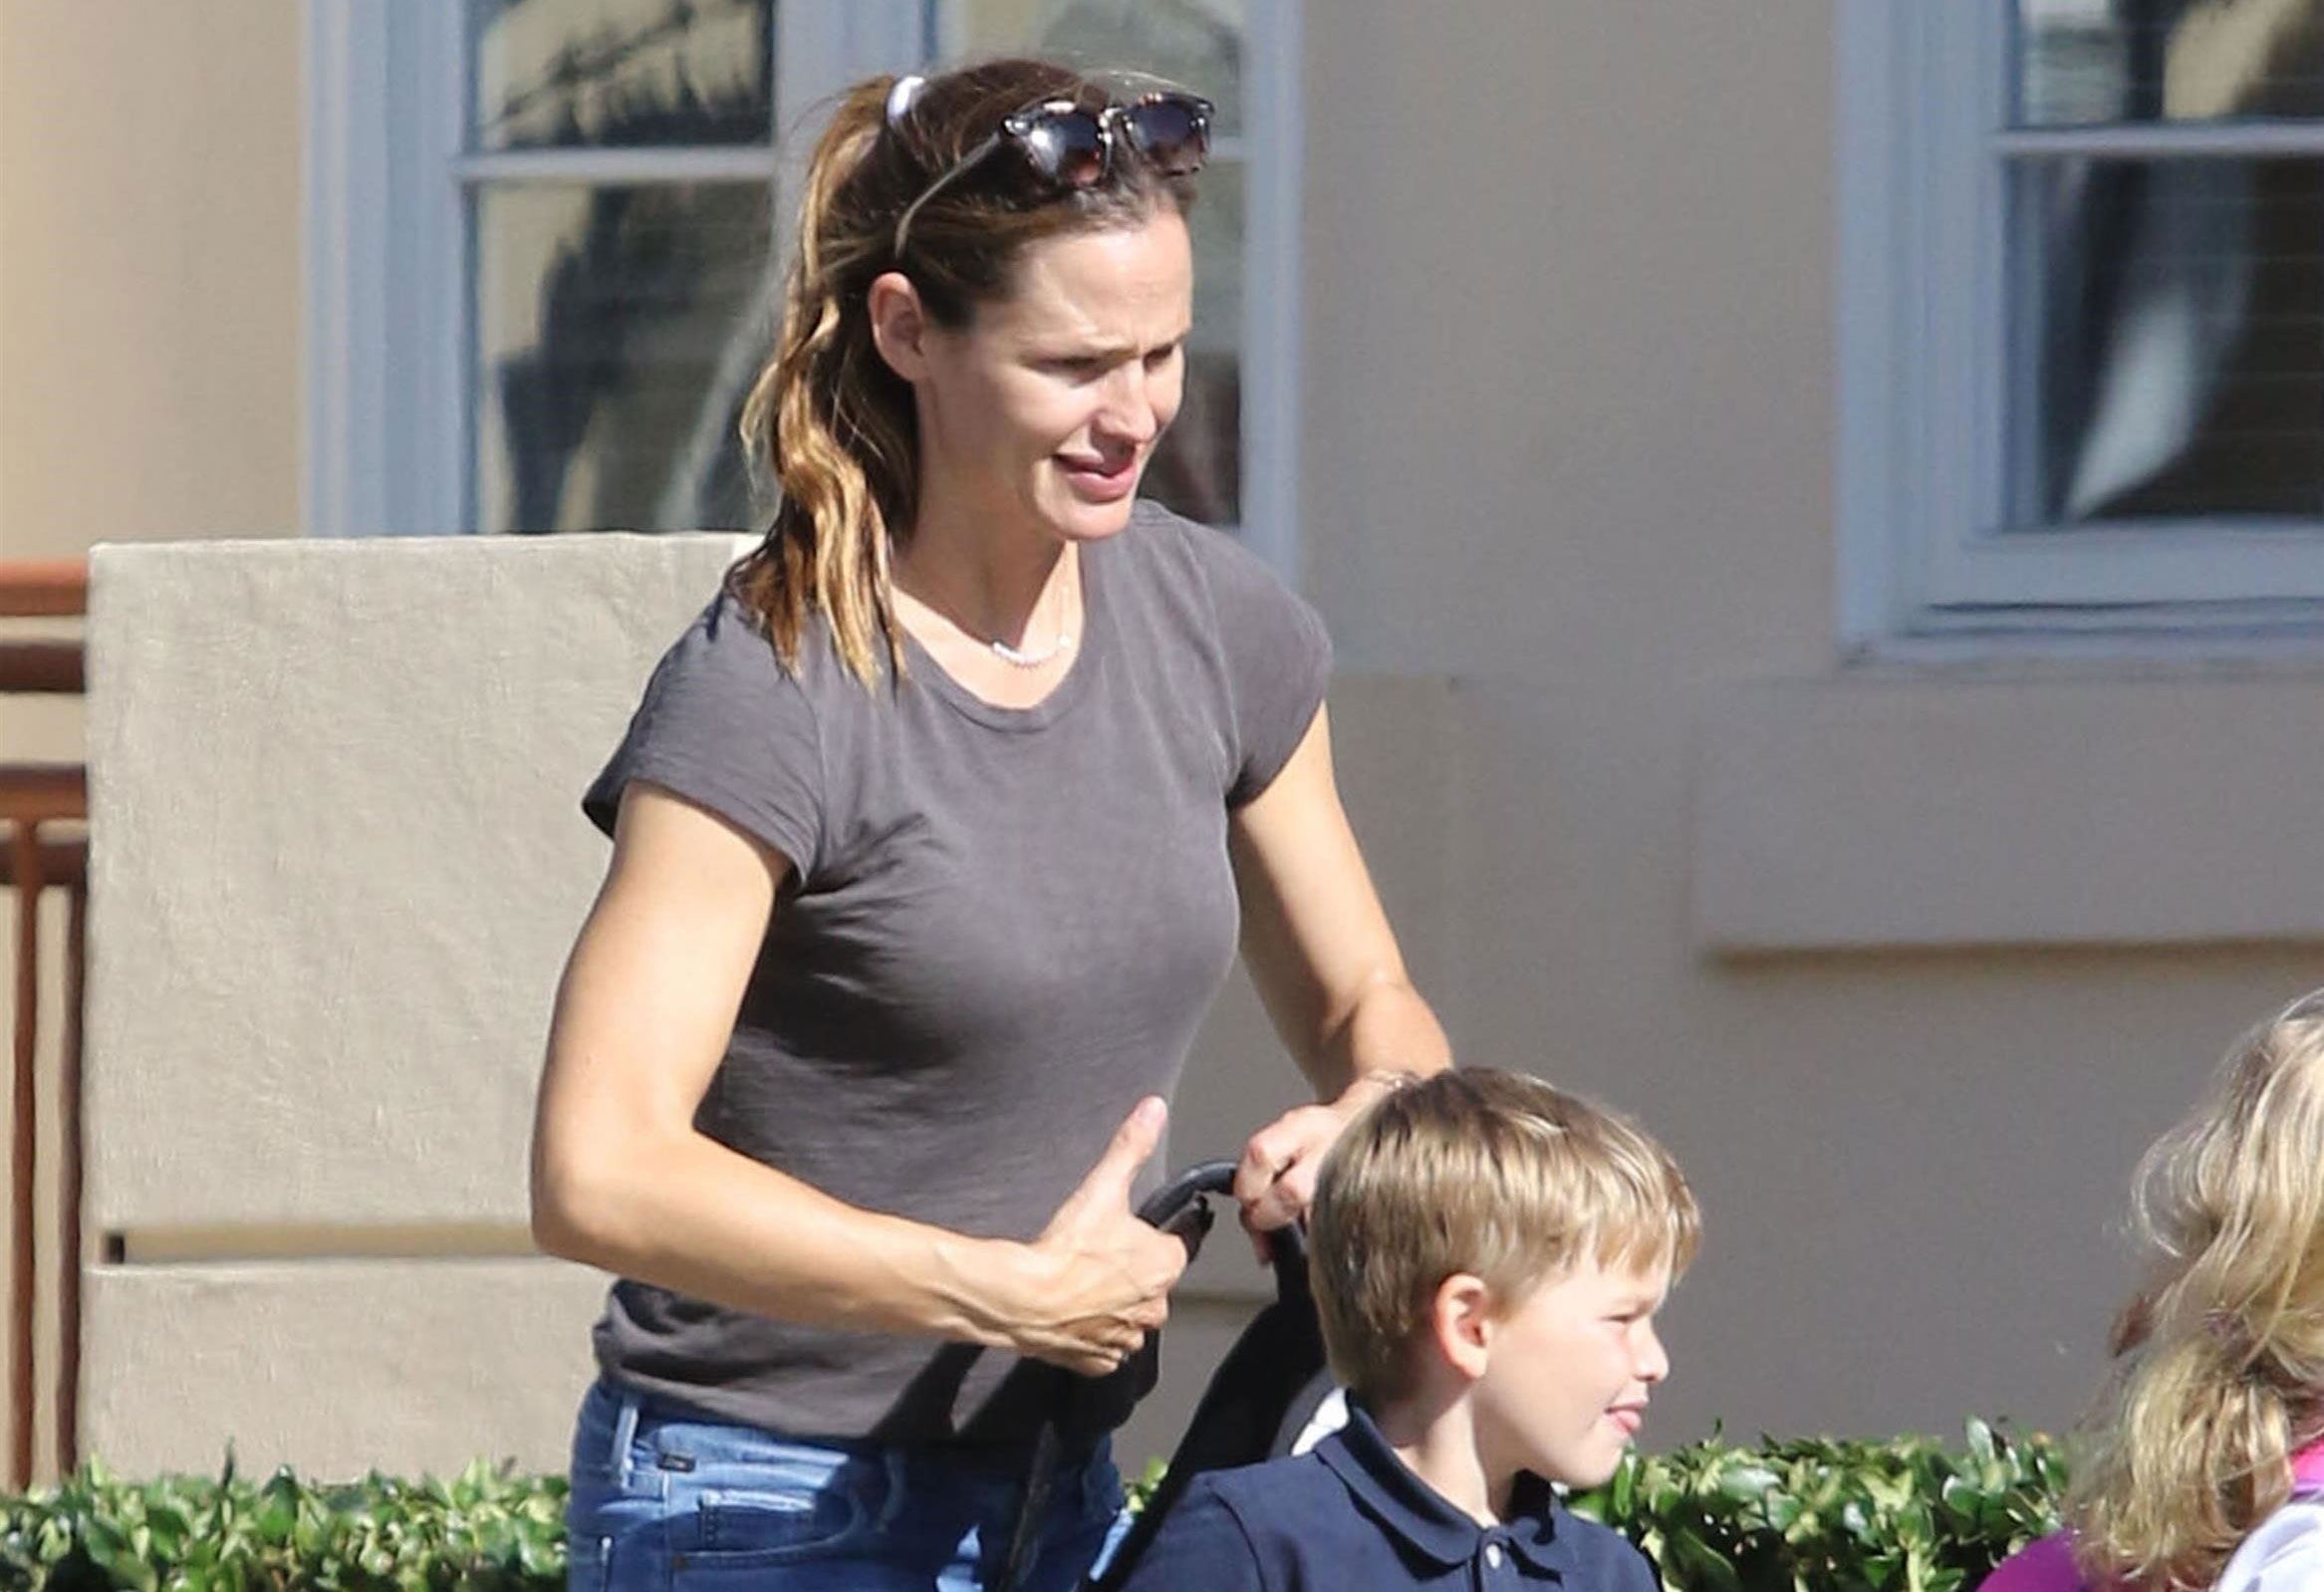 Jennifer garner spotted looking glum amid ben afflecks groping scandal